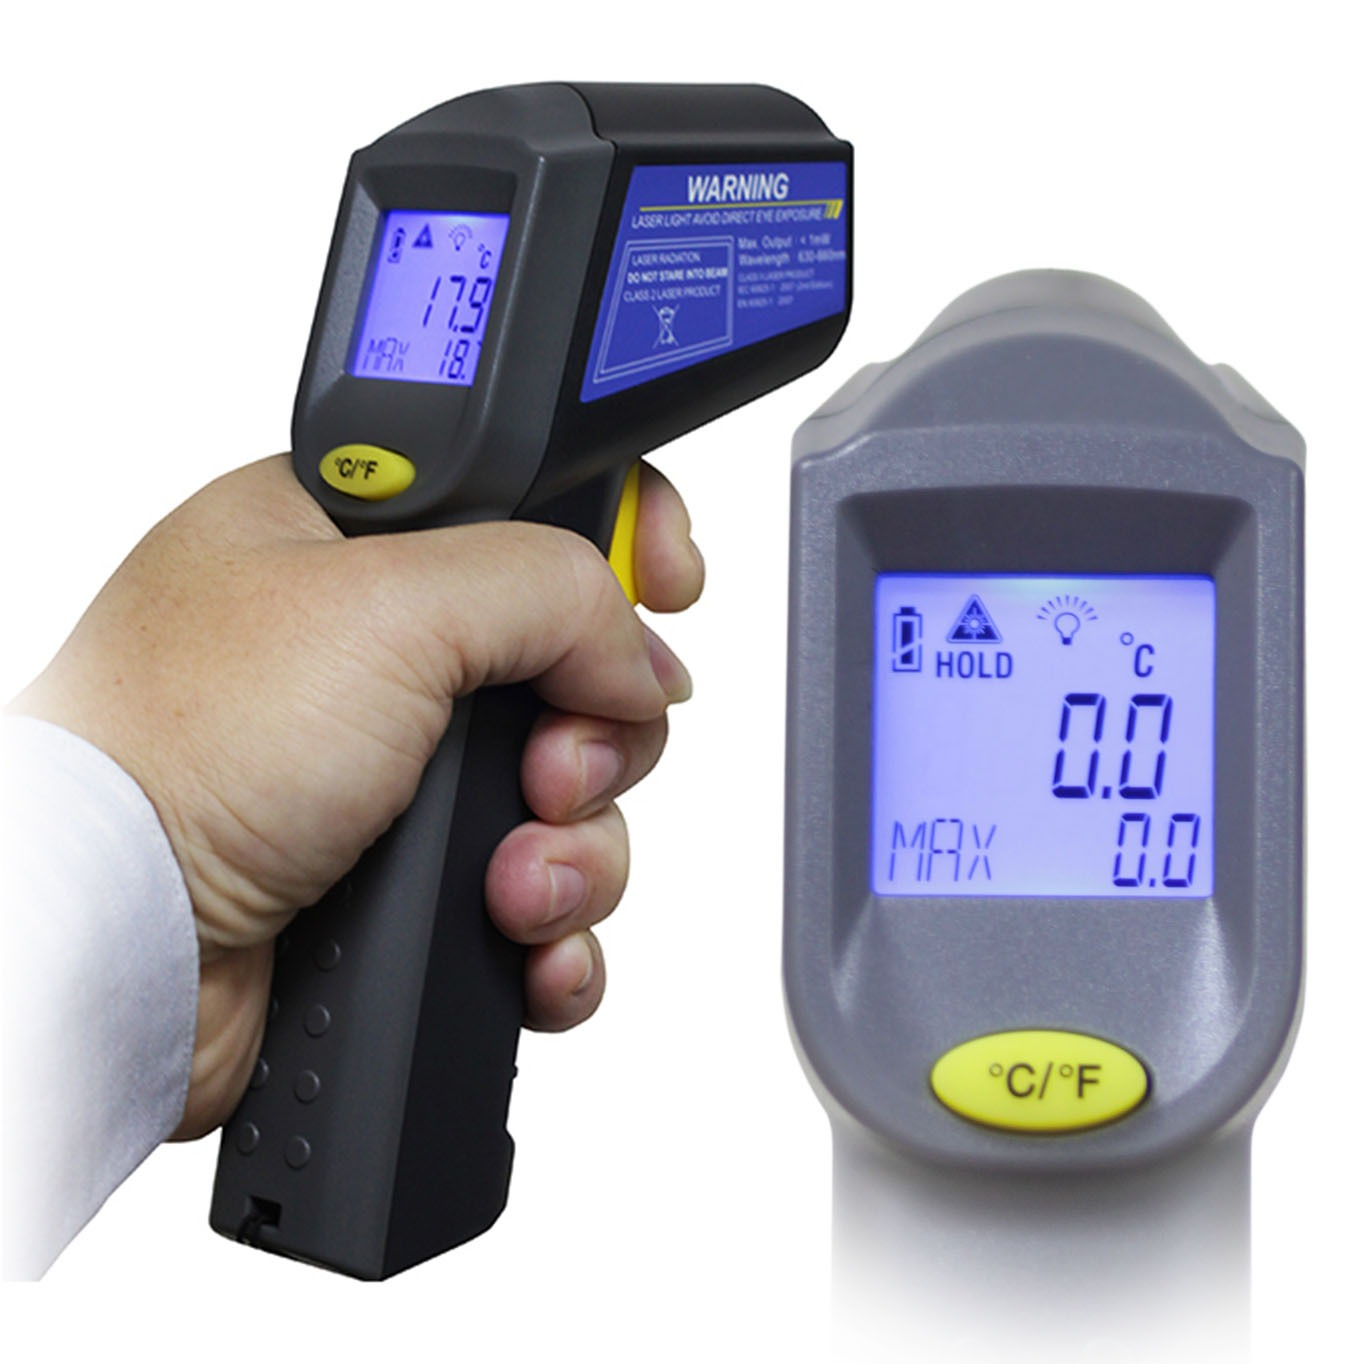 Automobile Infrared Thermometer for Testing Equipment made by ECPAL VEHICLE CO., LTD. 威爾可有限公司 - MatchSupplier.com